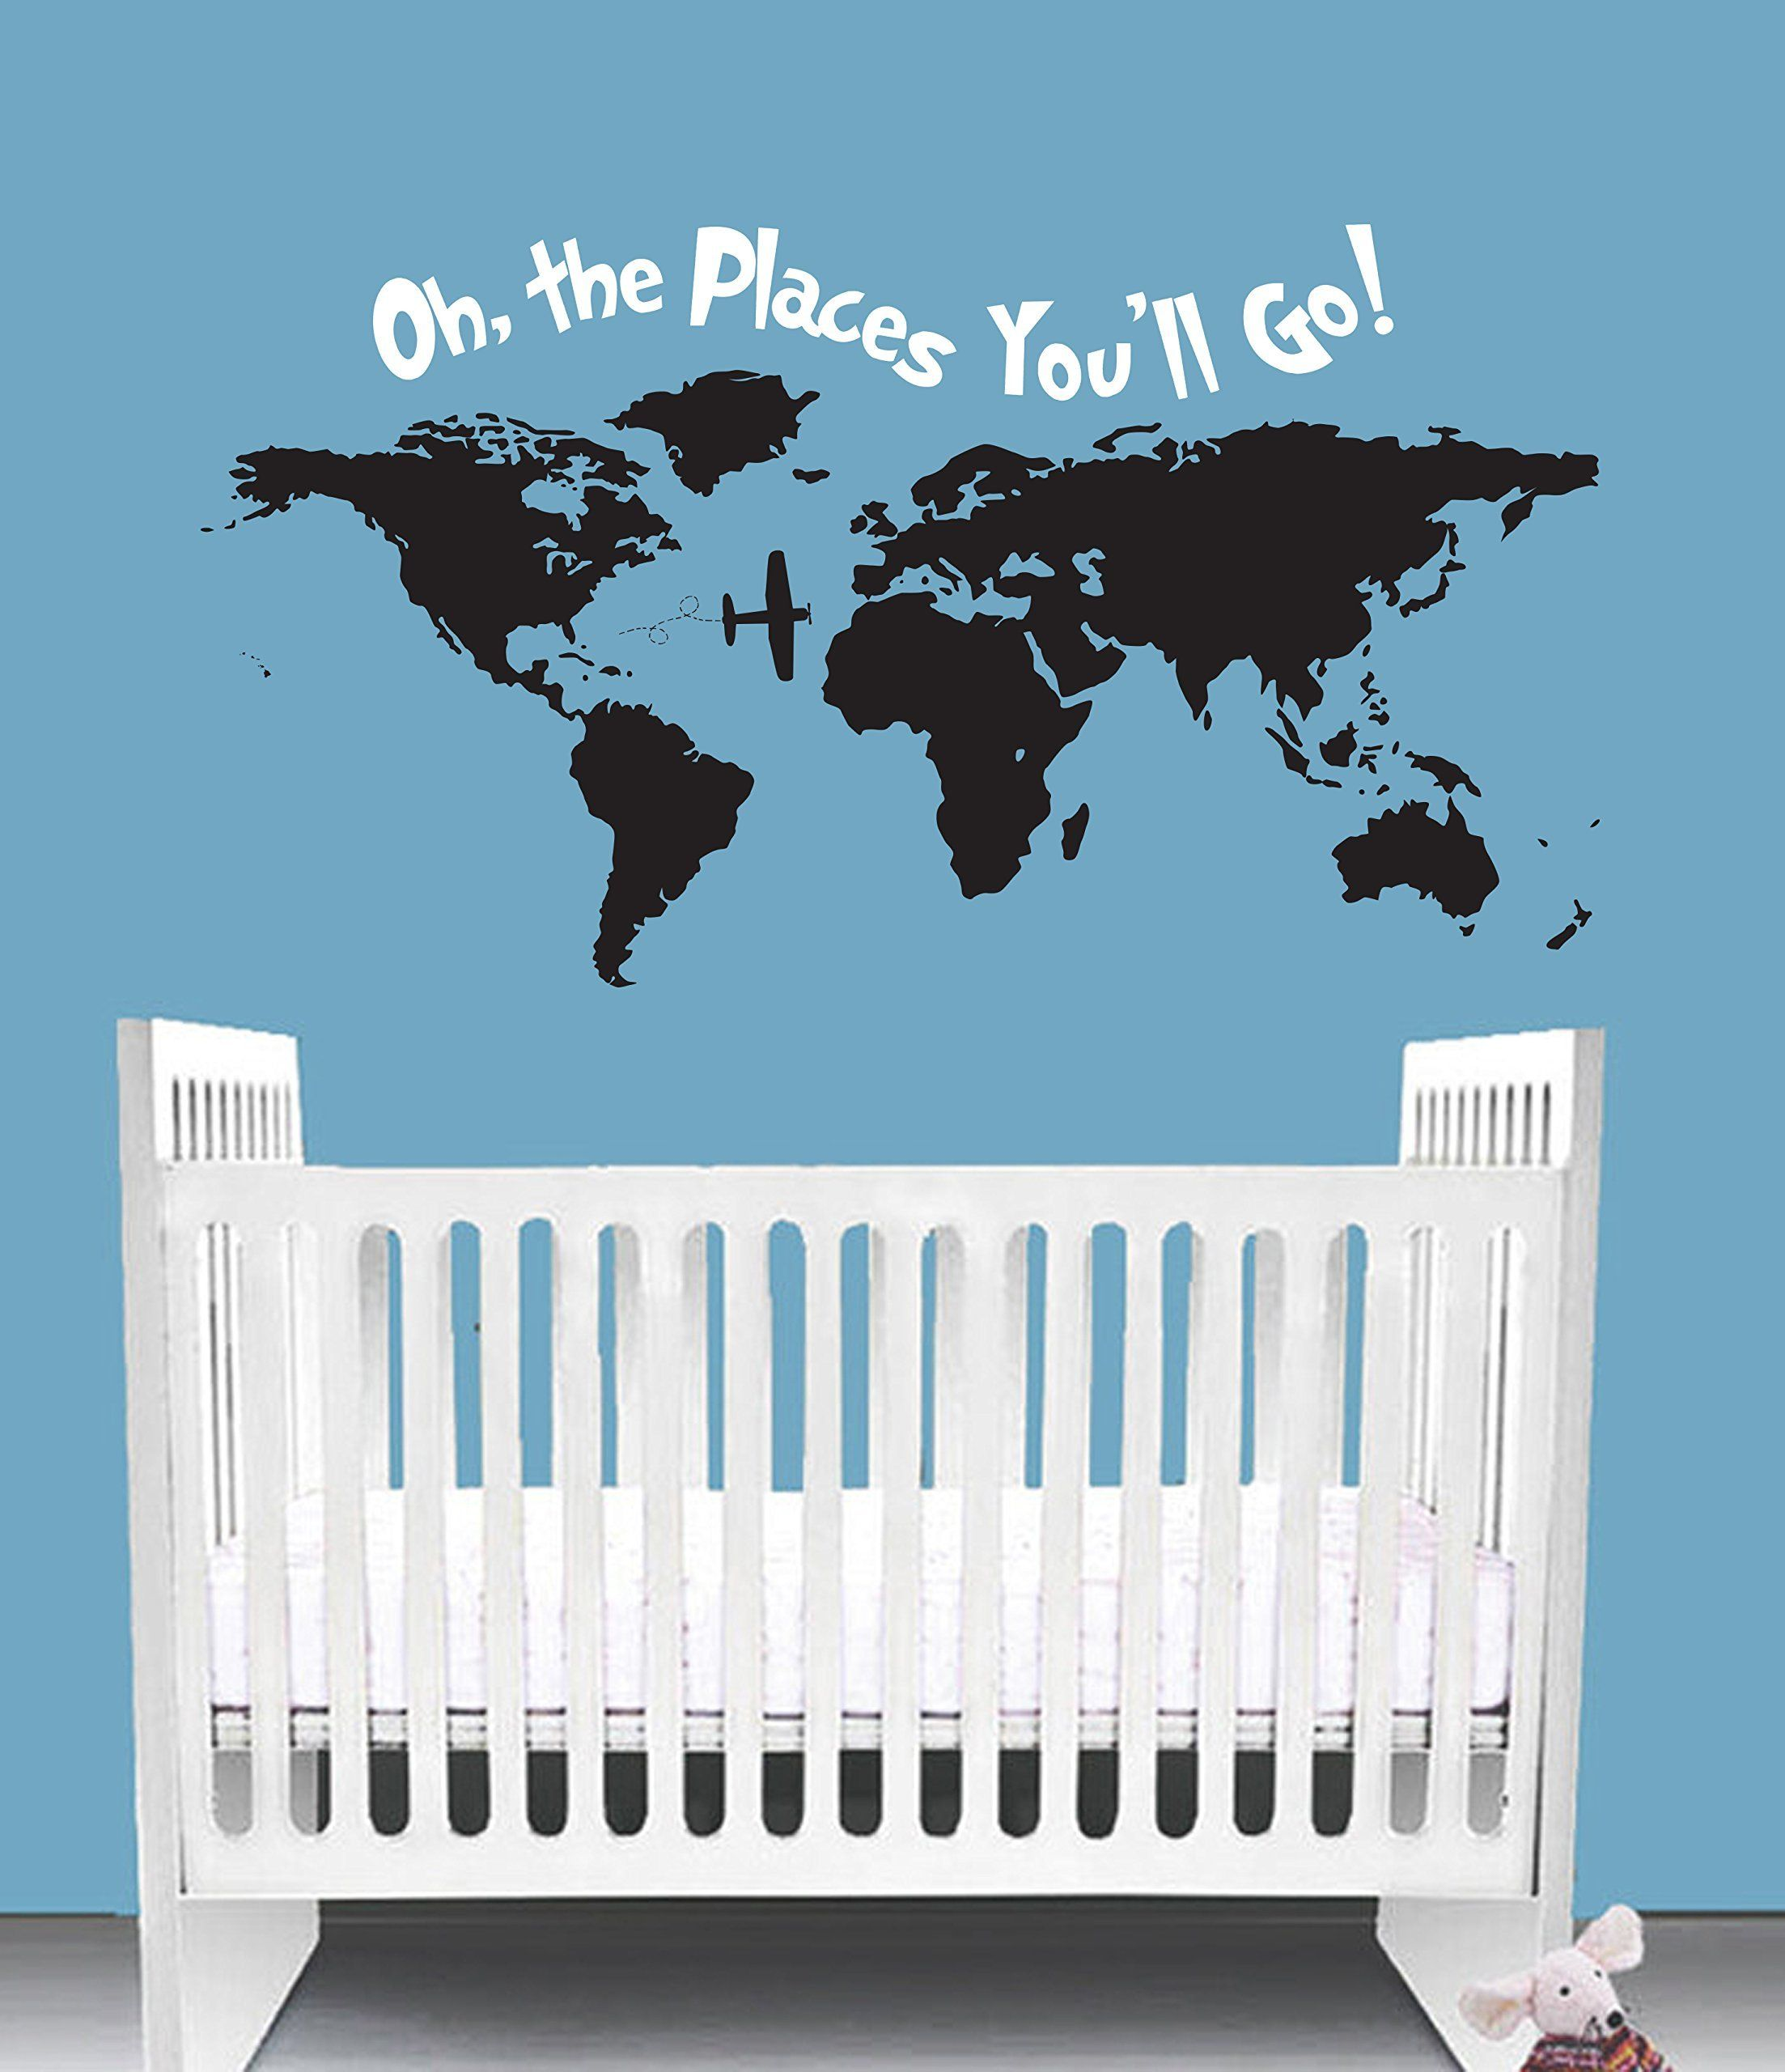 Oh the places youll go dr seuss inspired nursery wall decal quote oh the places youll go dr seuss inspired nursery wall decal quote crib bedding wall art world nautical travel map bedroom this wall decal comes in gumiabroncs Choice Image